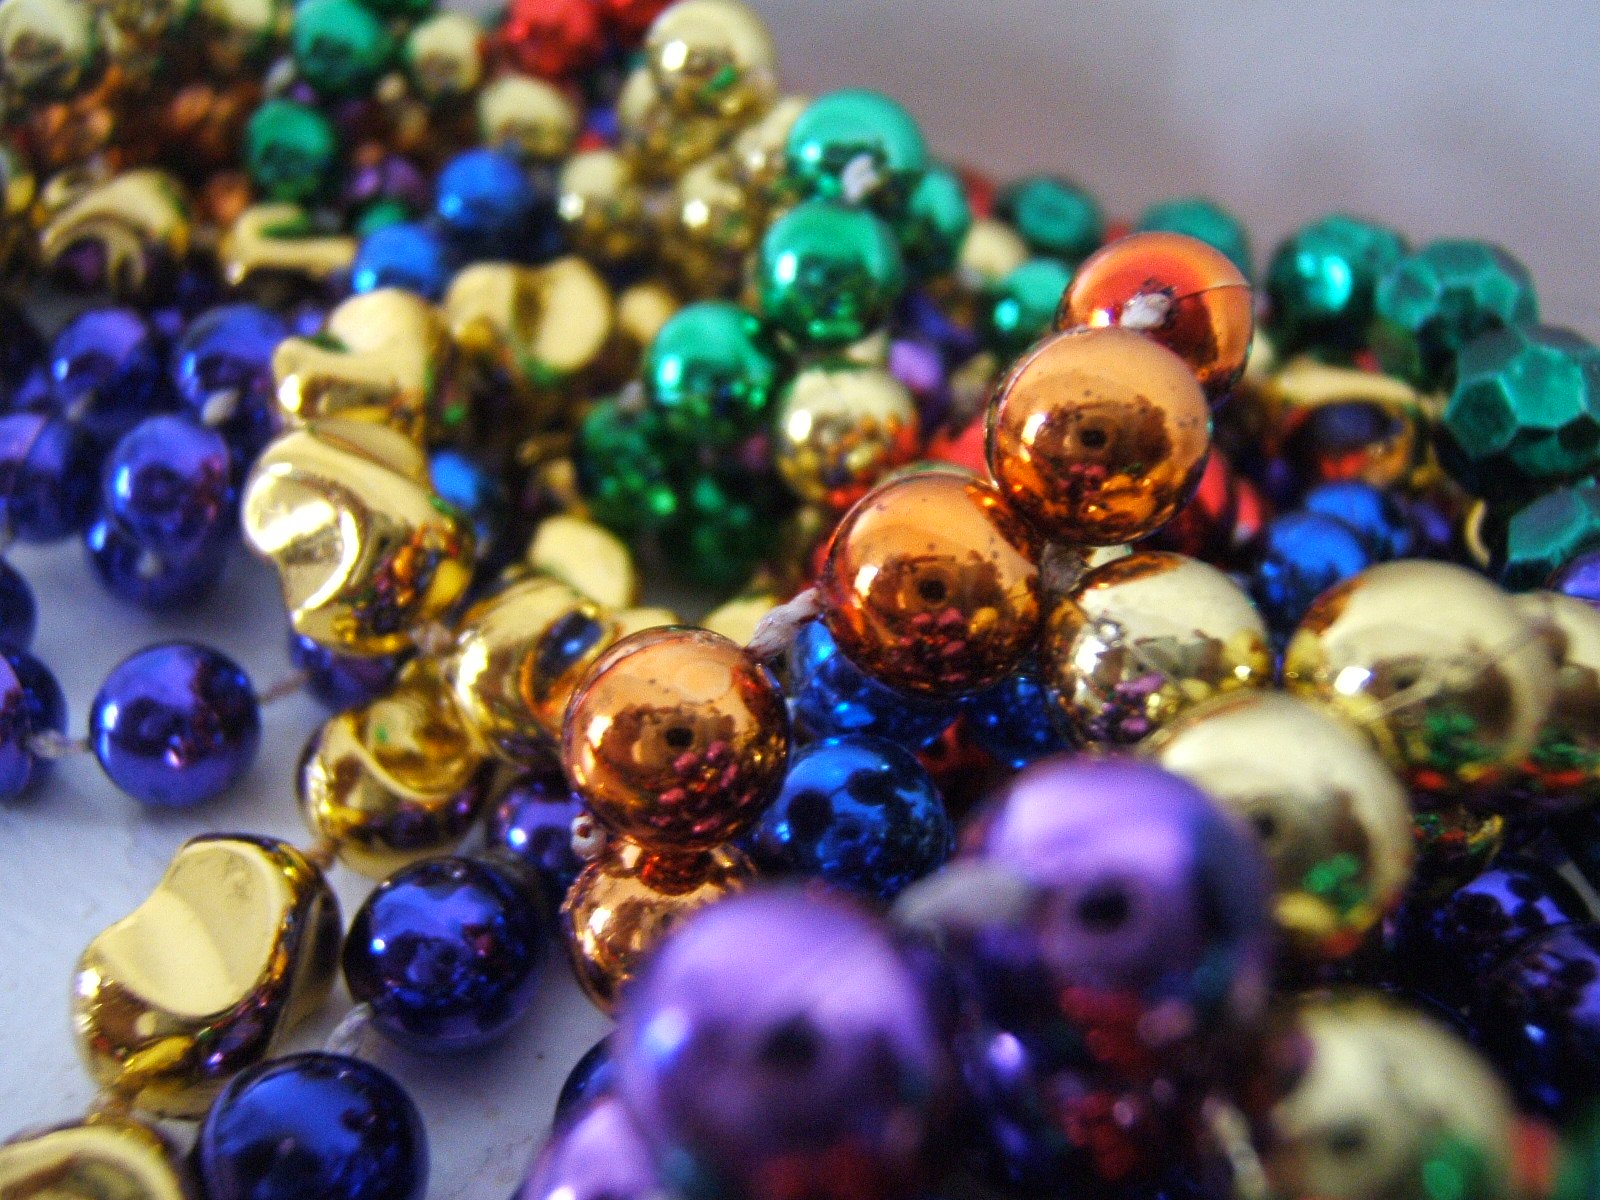 To do with all of the old mardi gras beads that you have stockpiled